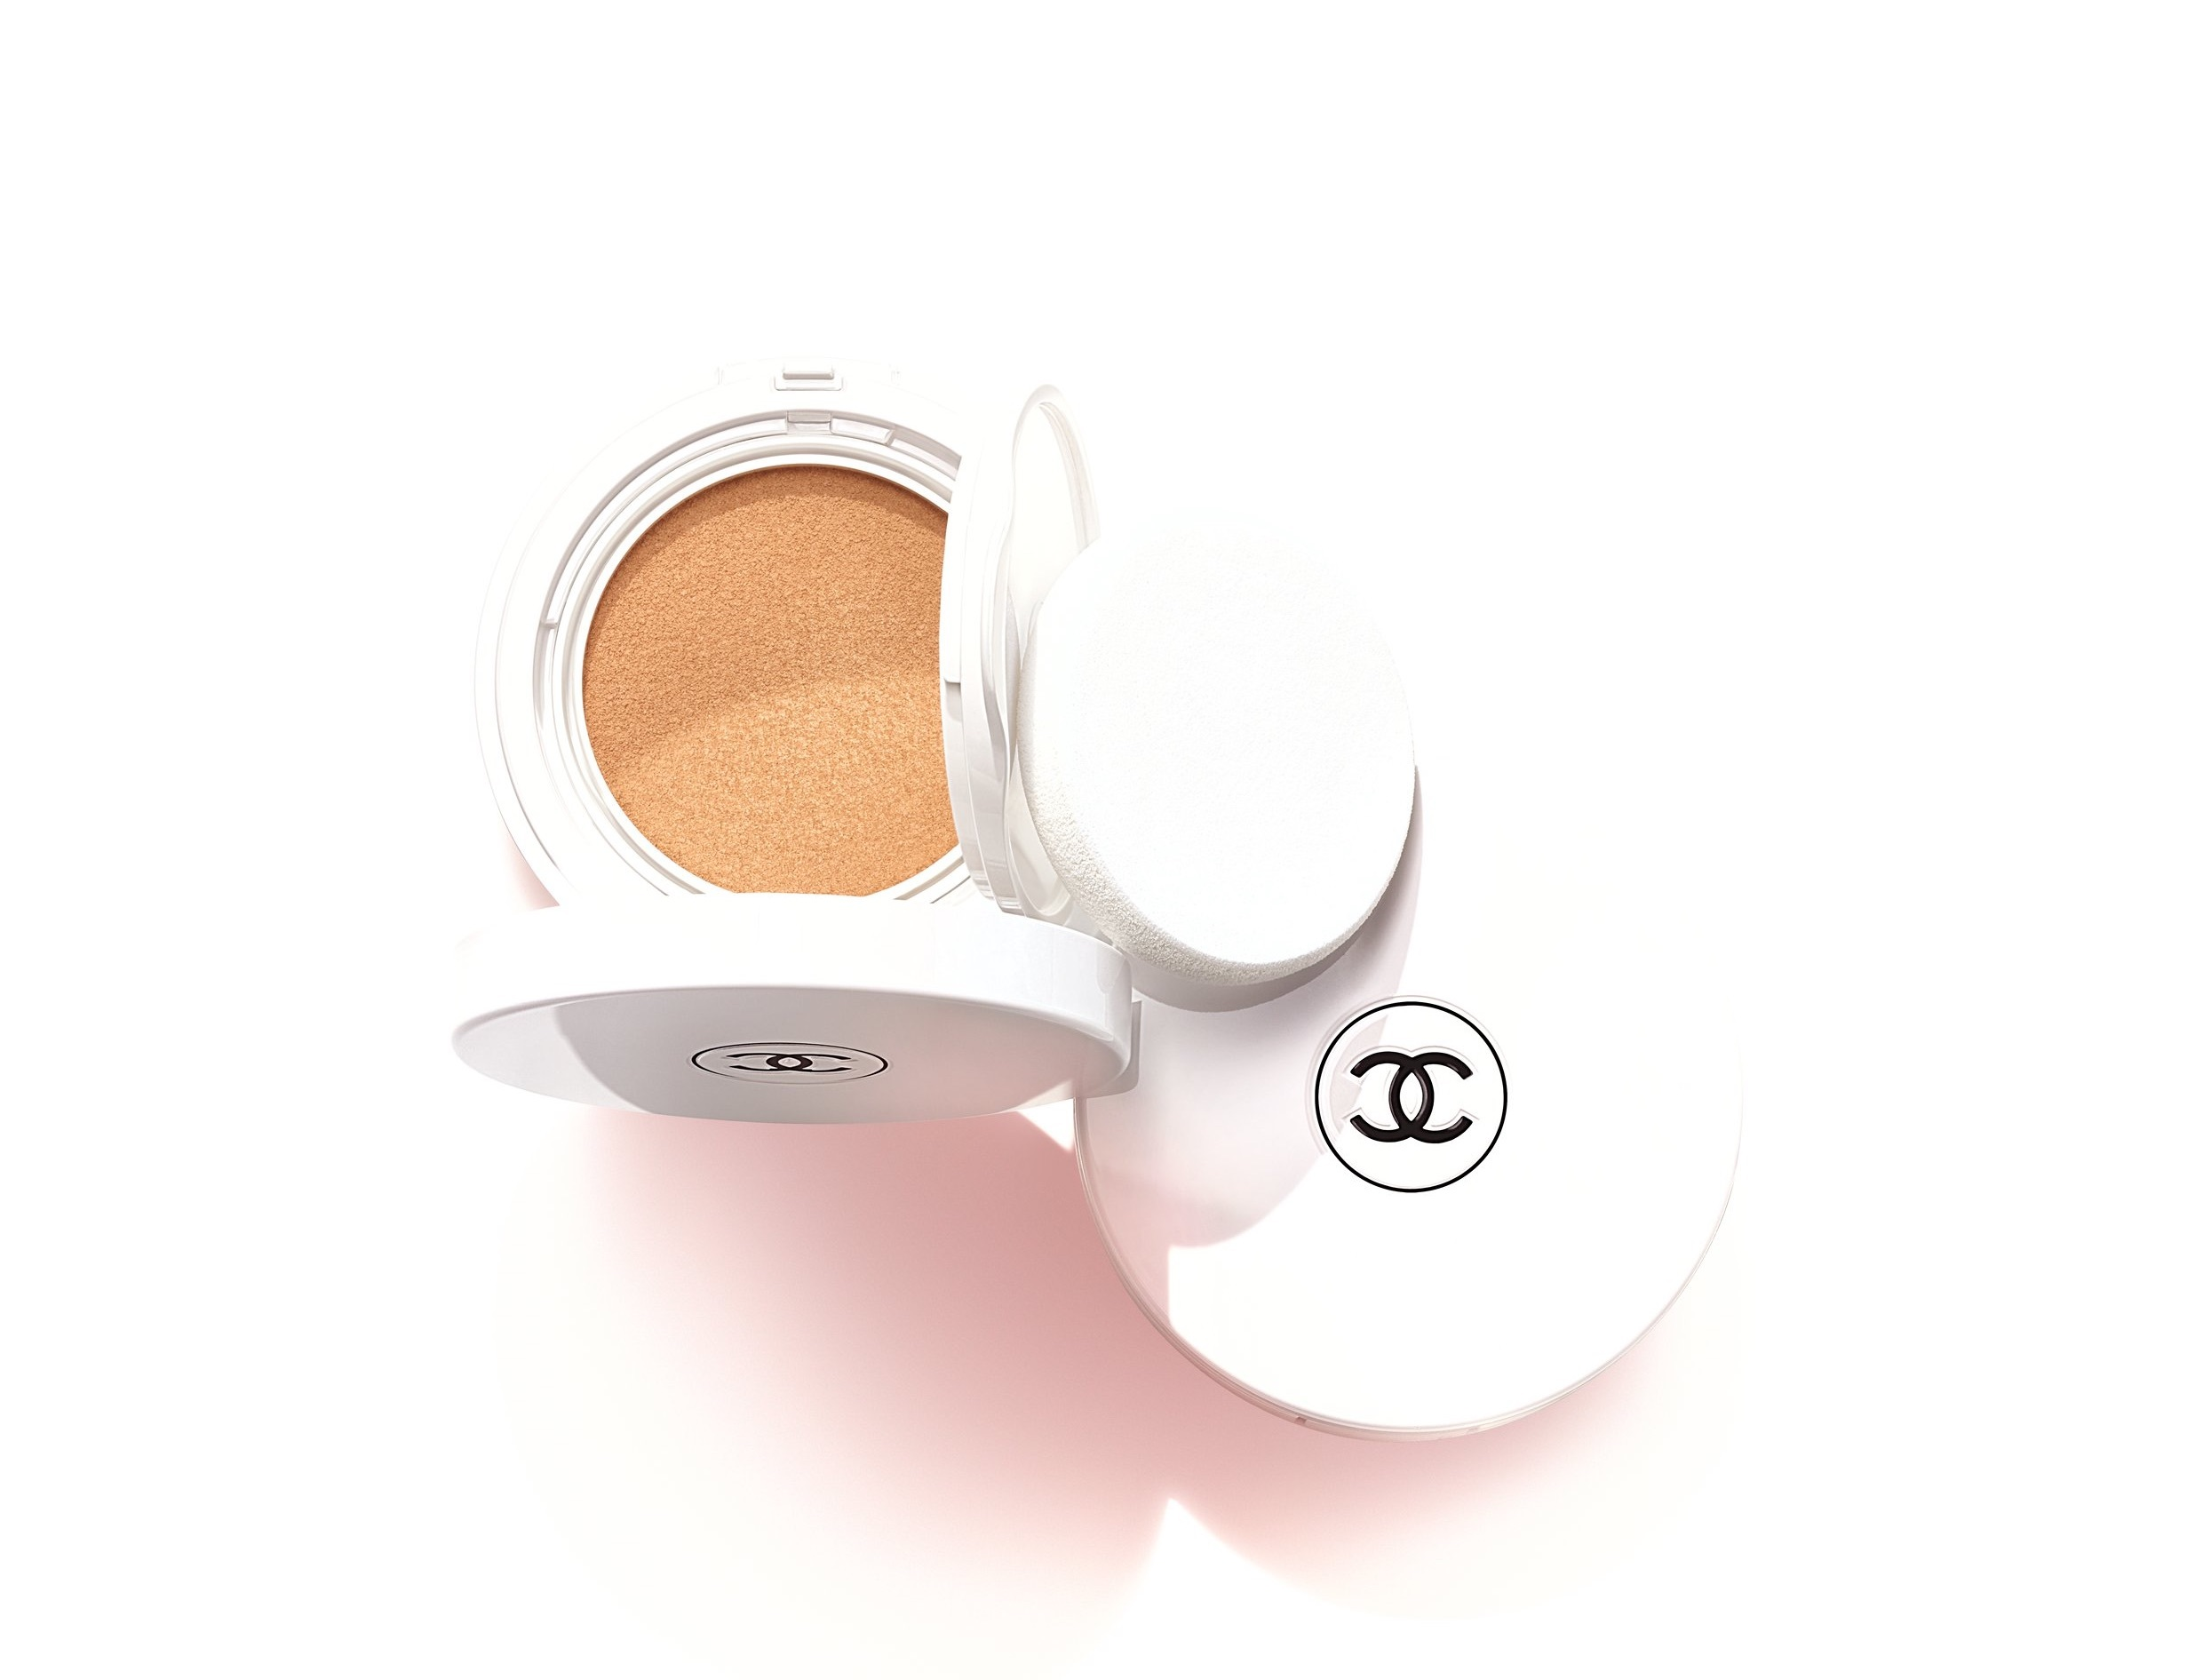 Chanel compact foundation